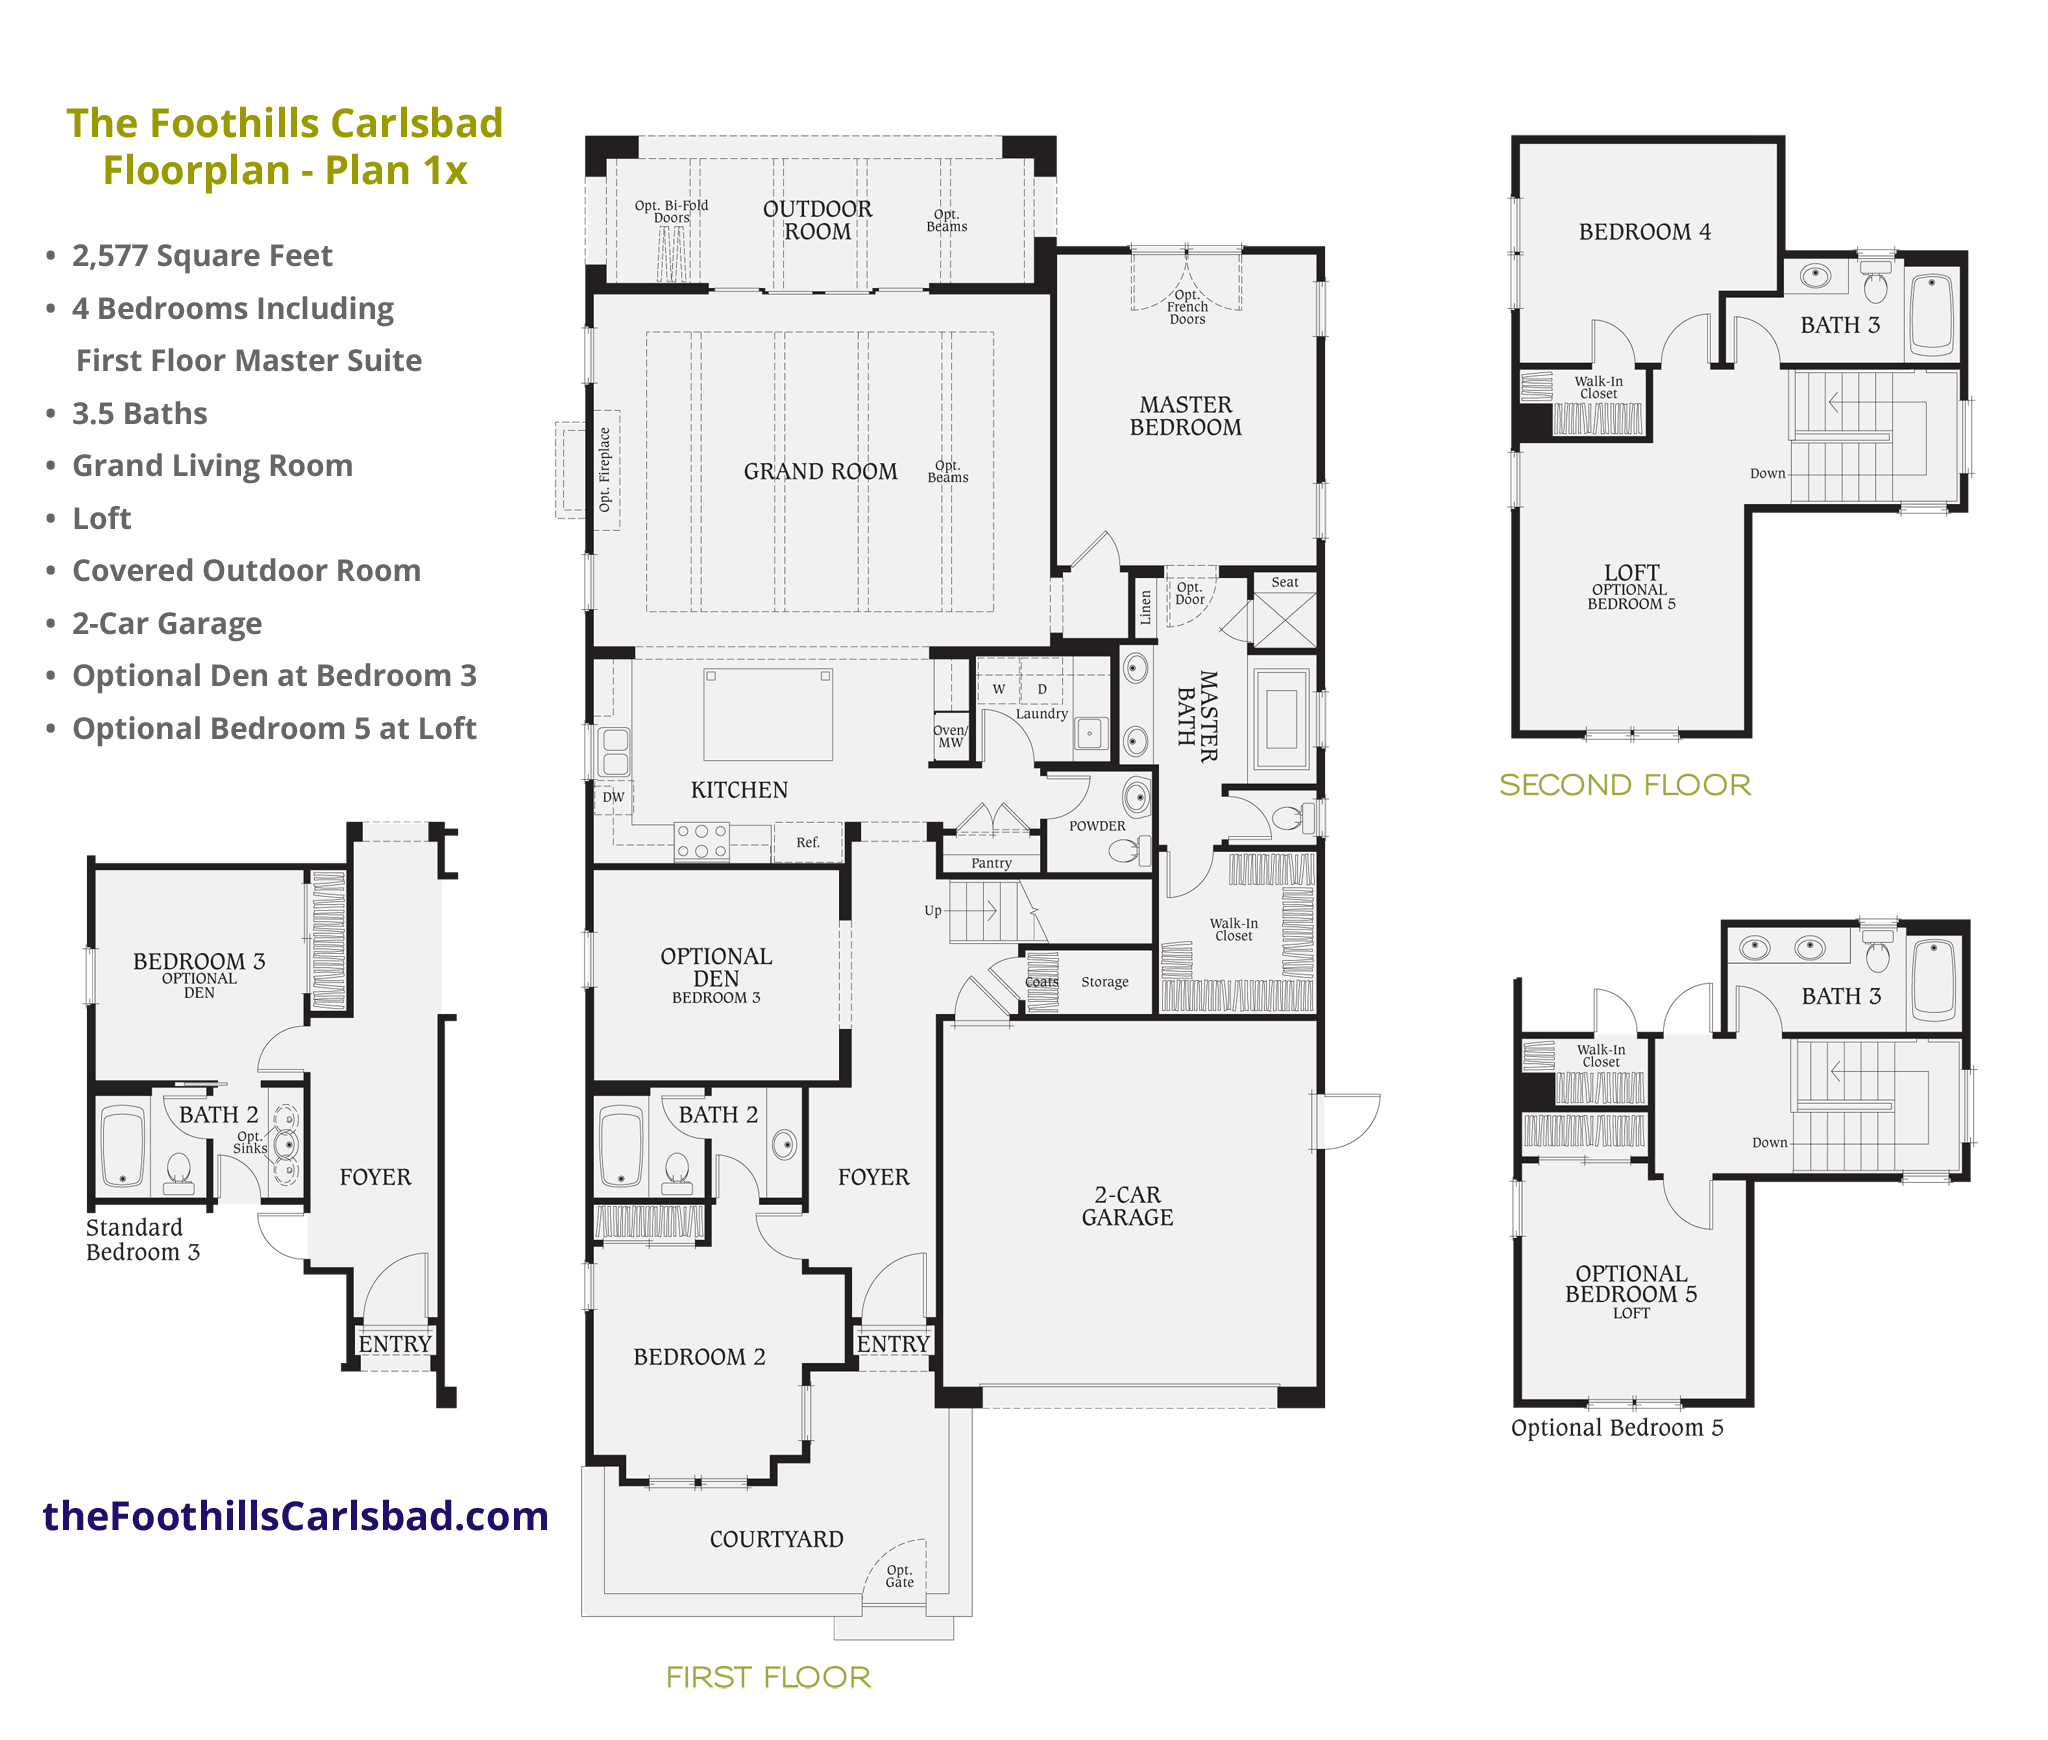 residential floor plans modern house high rise residential building plans home residential